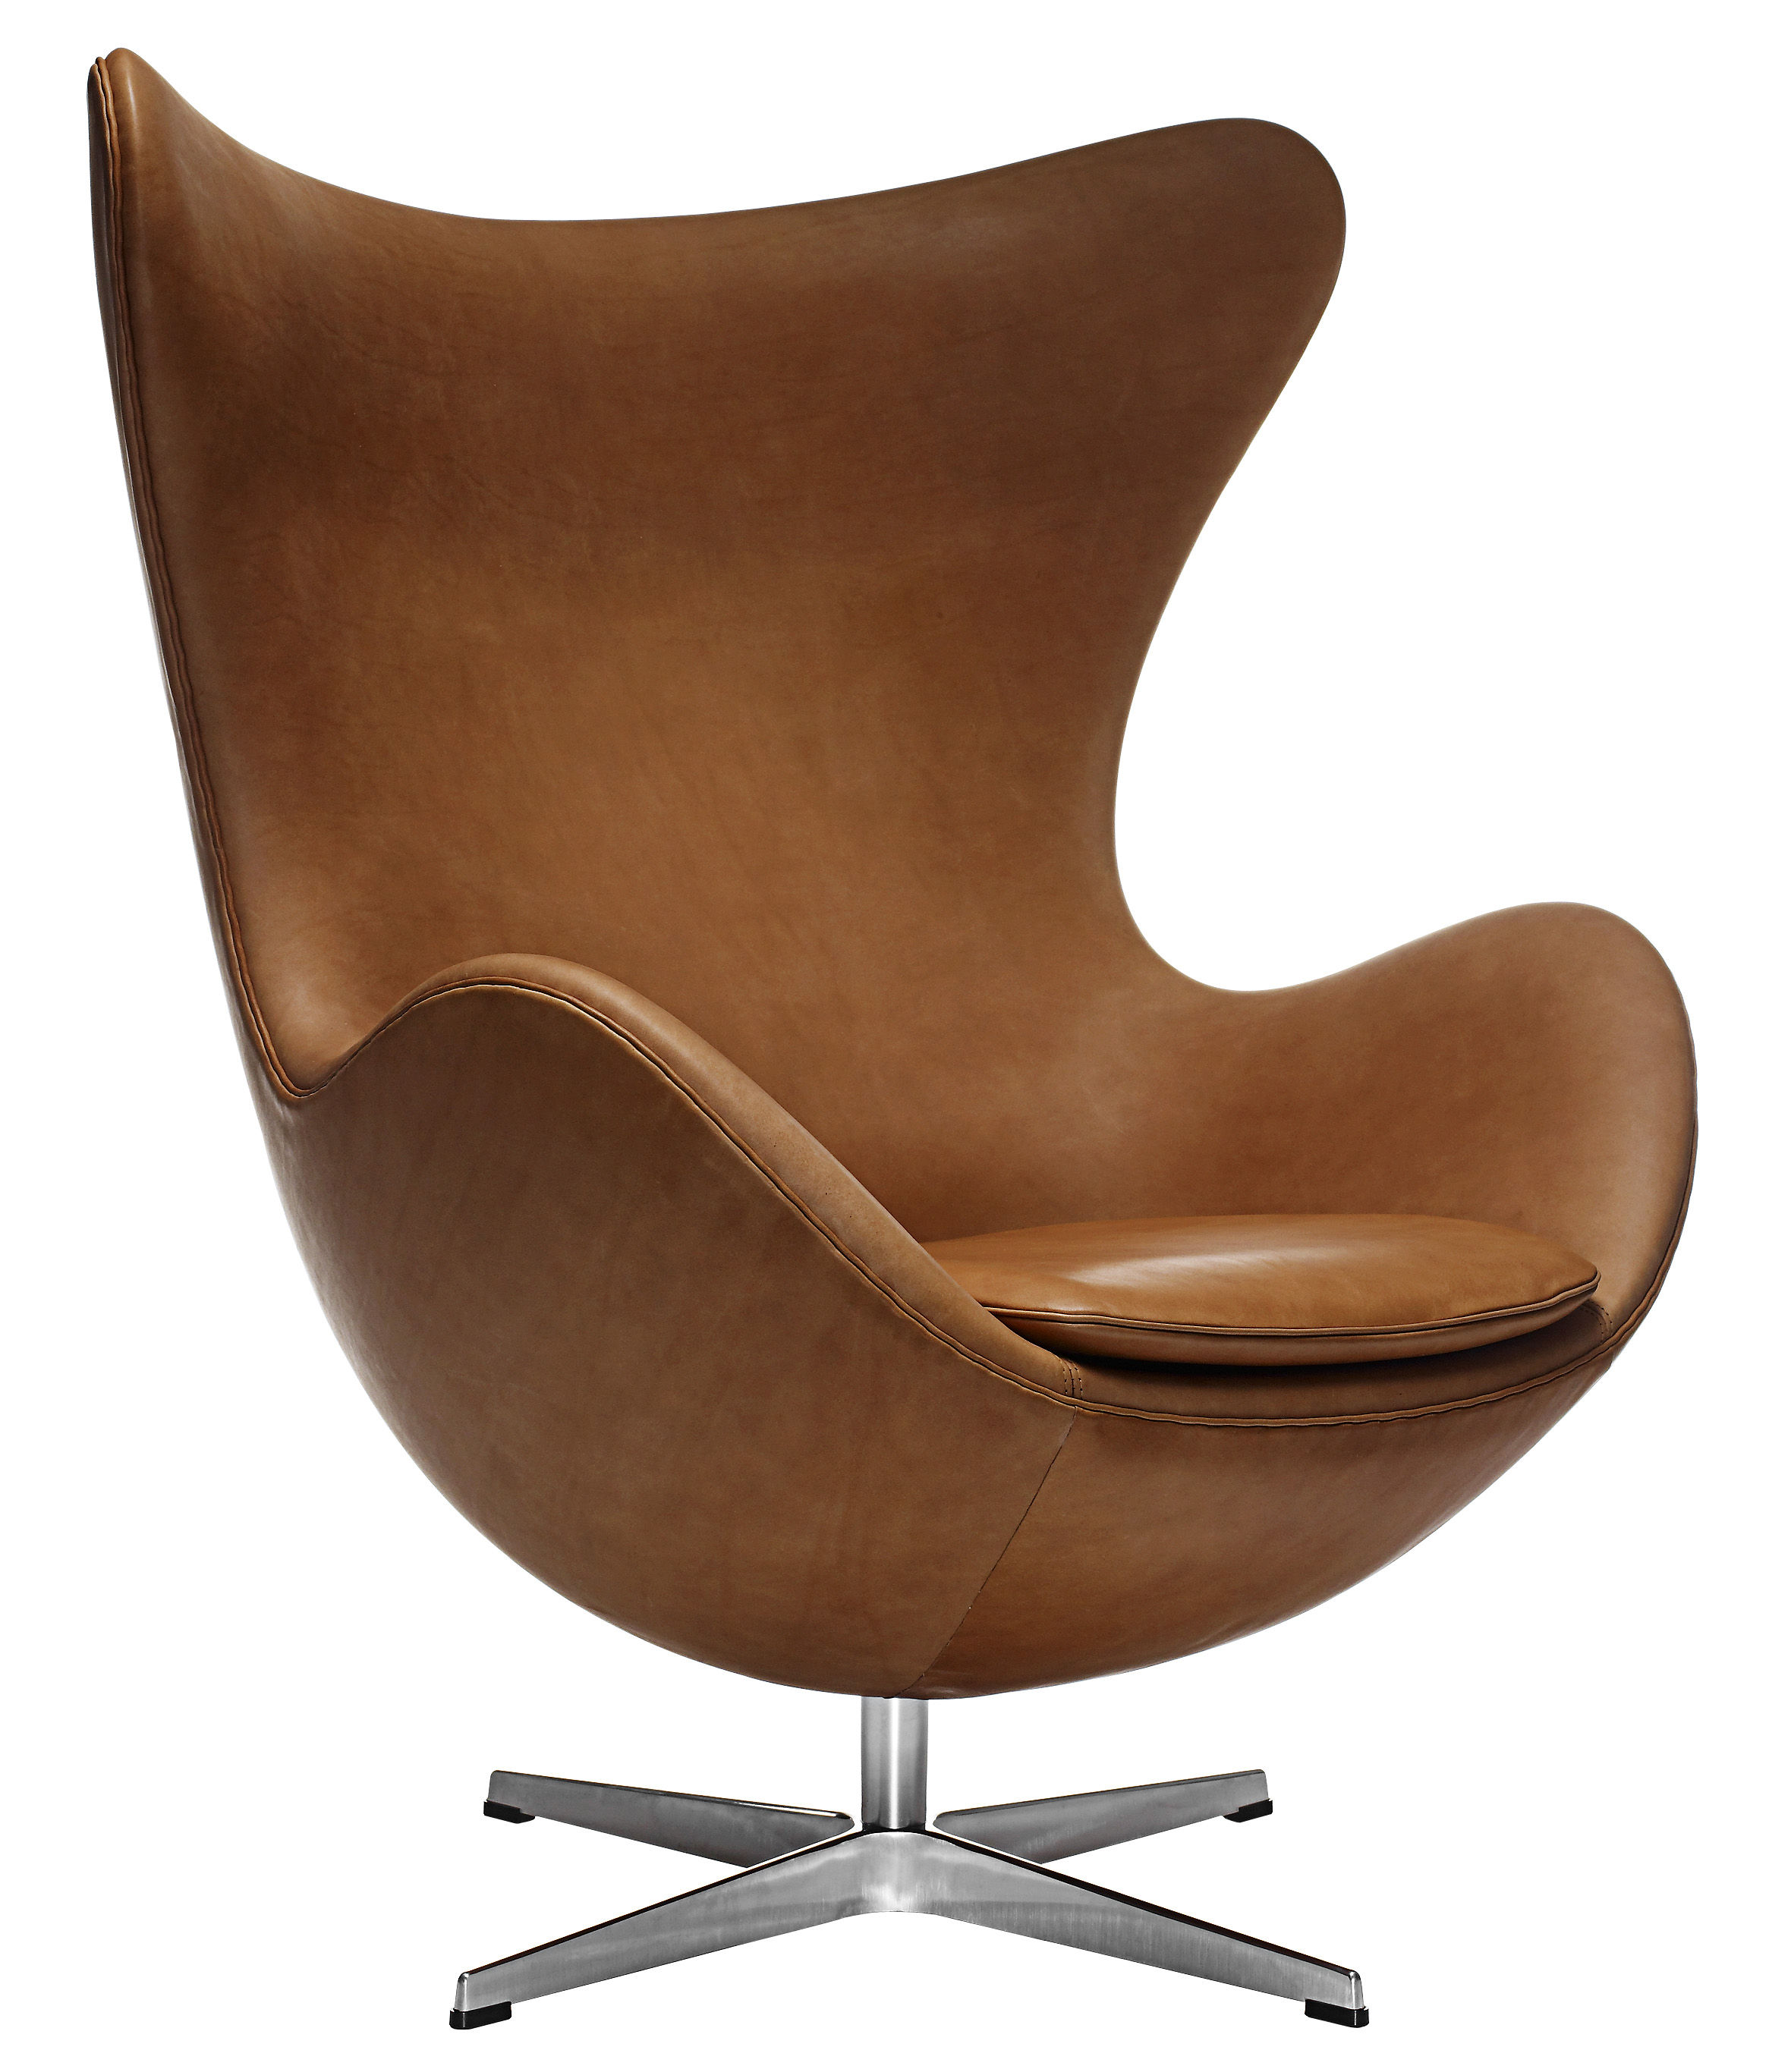 egg chair swivel armchair leather brown leather by. Black Bedroom Furniture Sets. Home Design Ideas